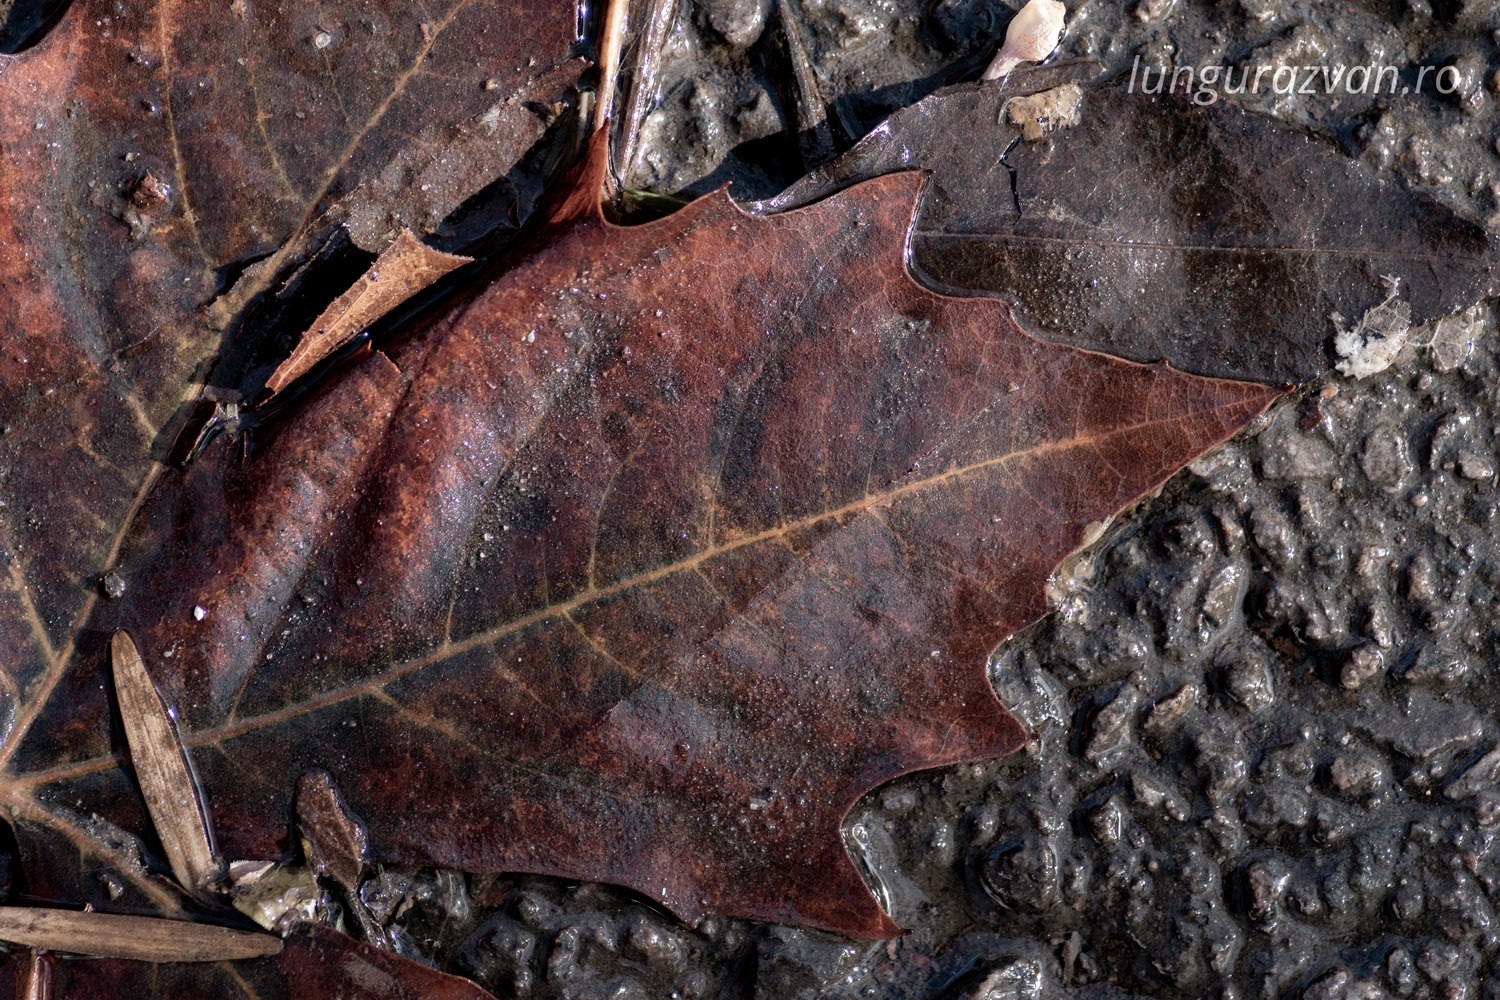 Wet leaf with leather like color and texture